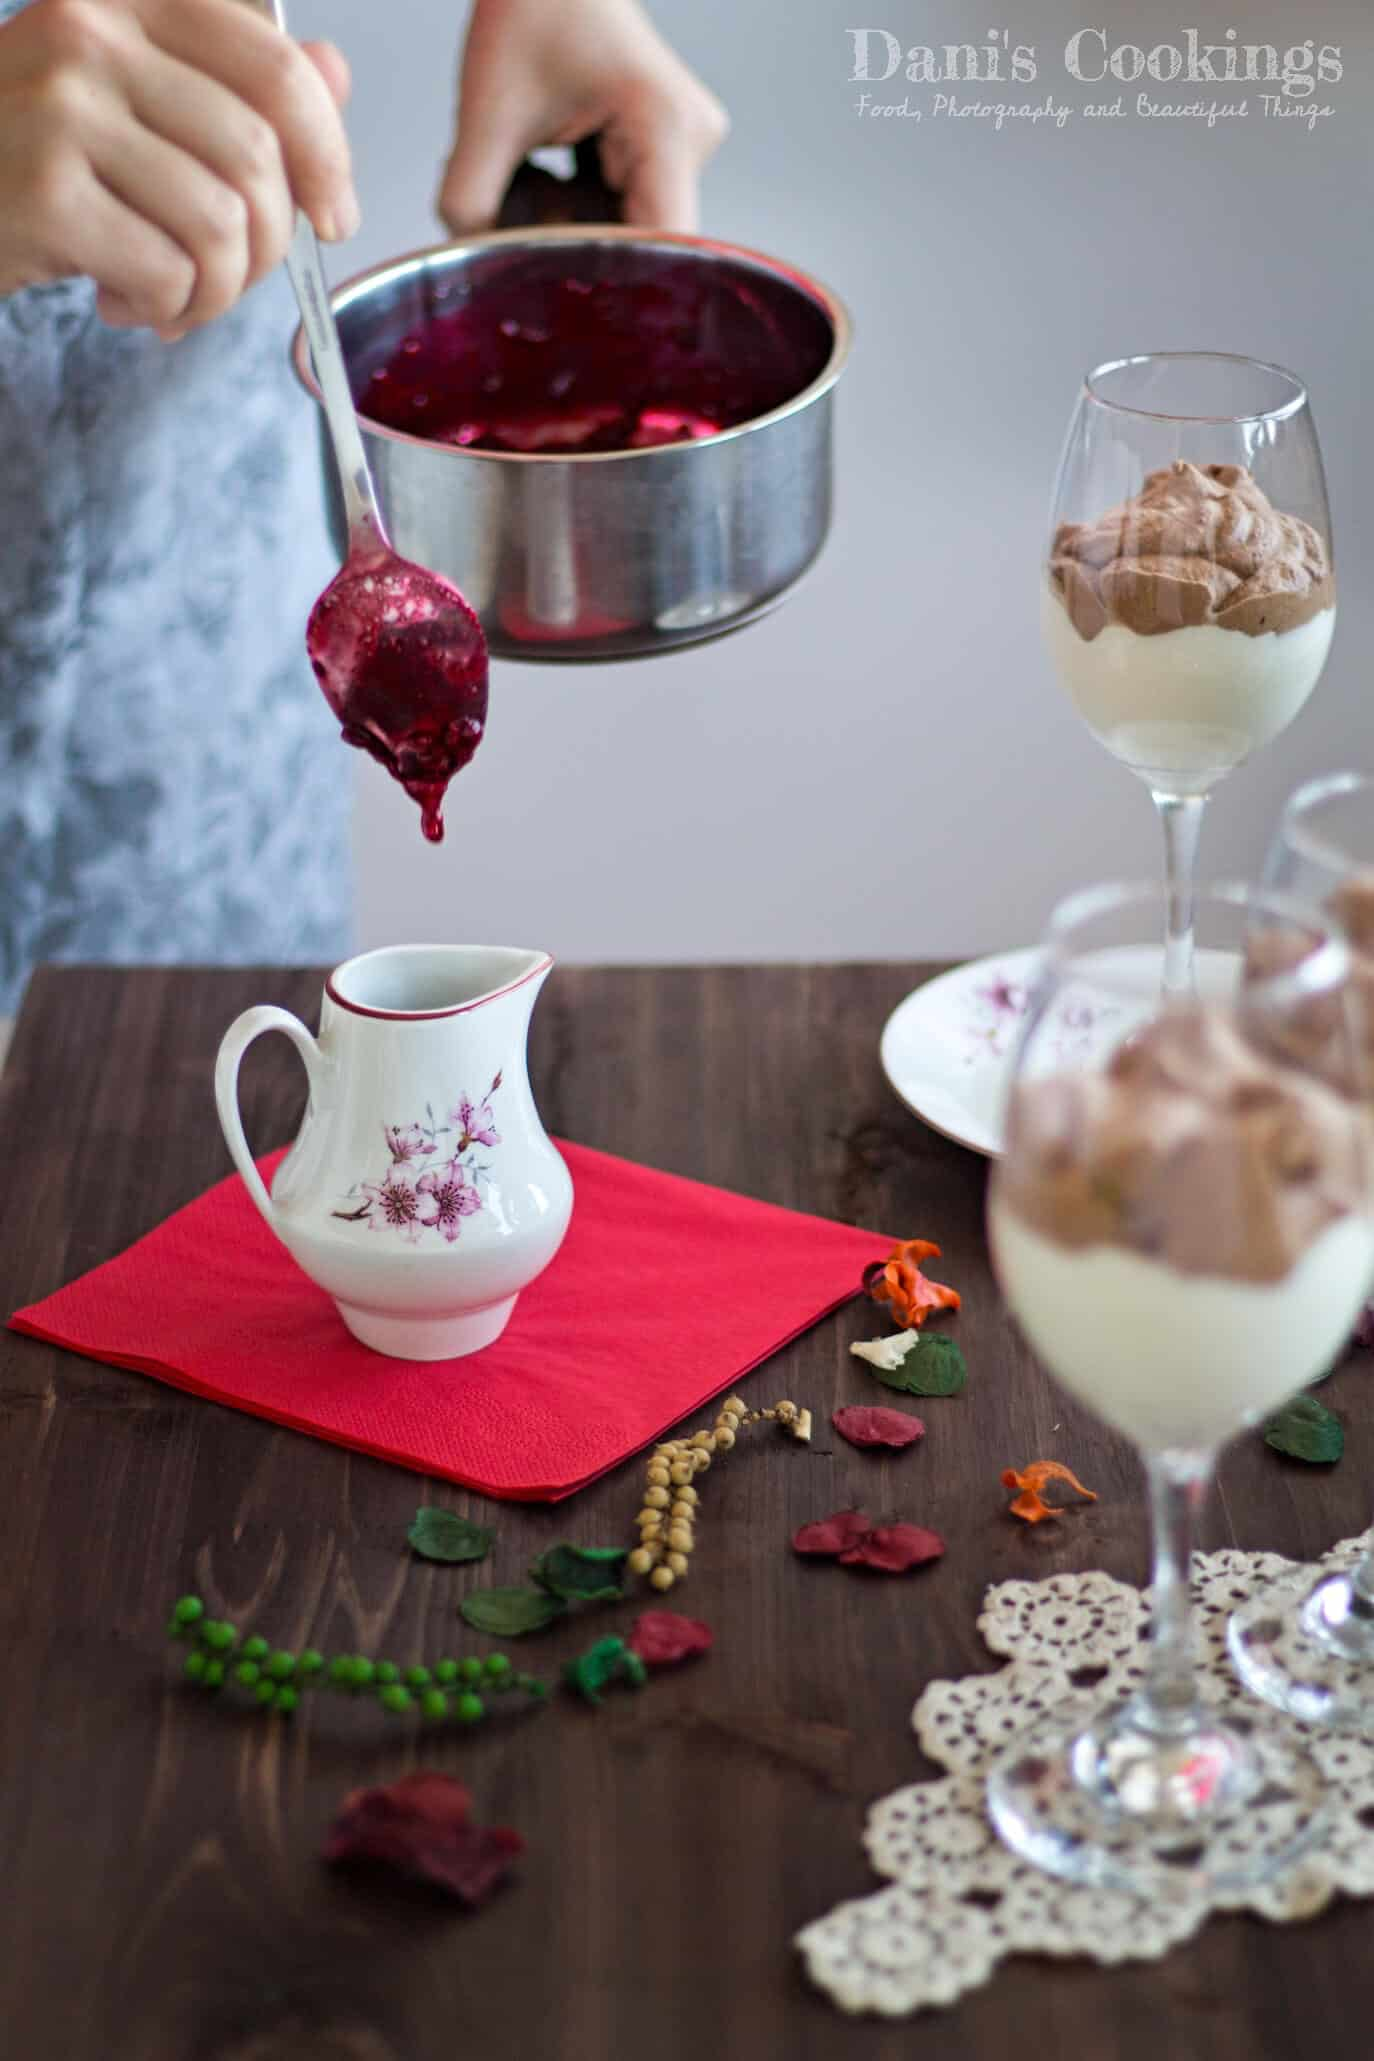 This easy and delicious Double Chocolate Mousse with Raspberry sauce is made with only 5 ingredients! Find the recipe at daniscookings.com